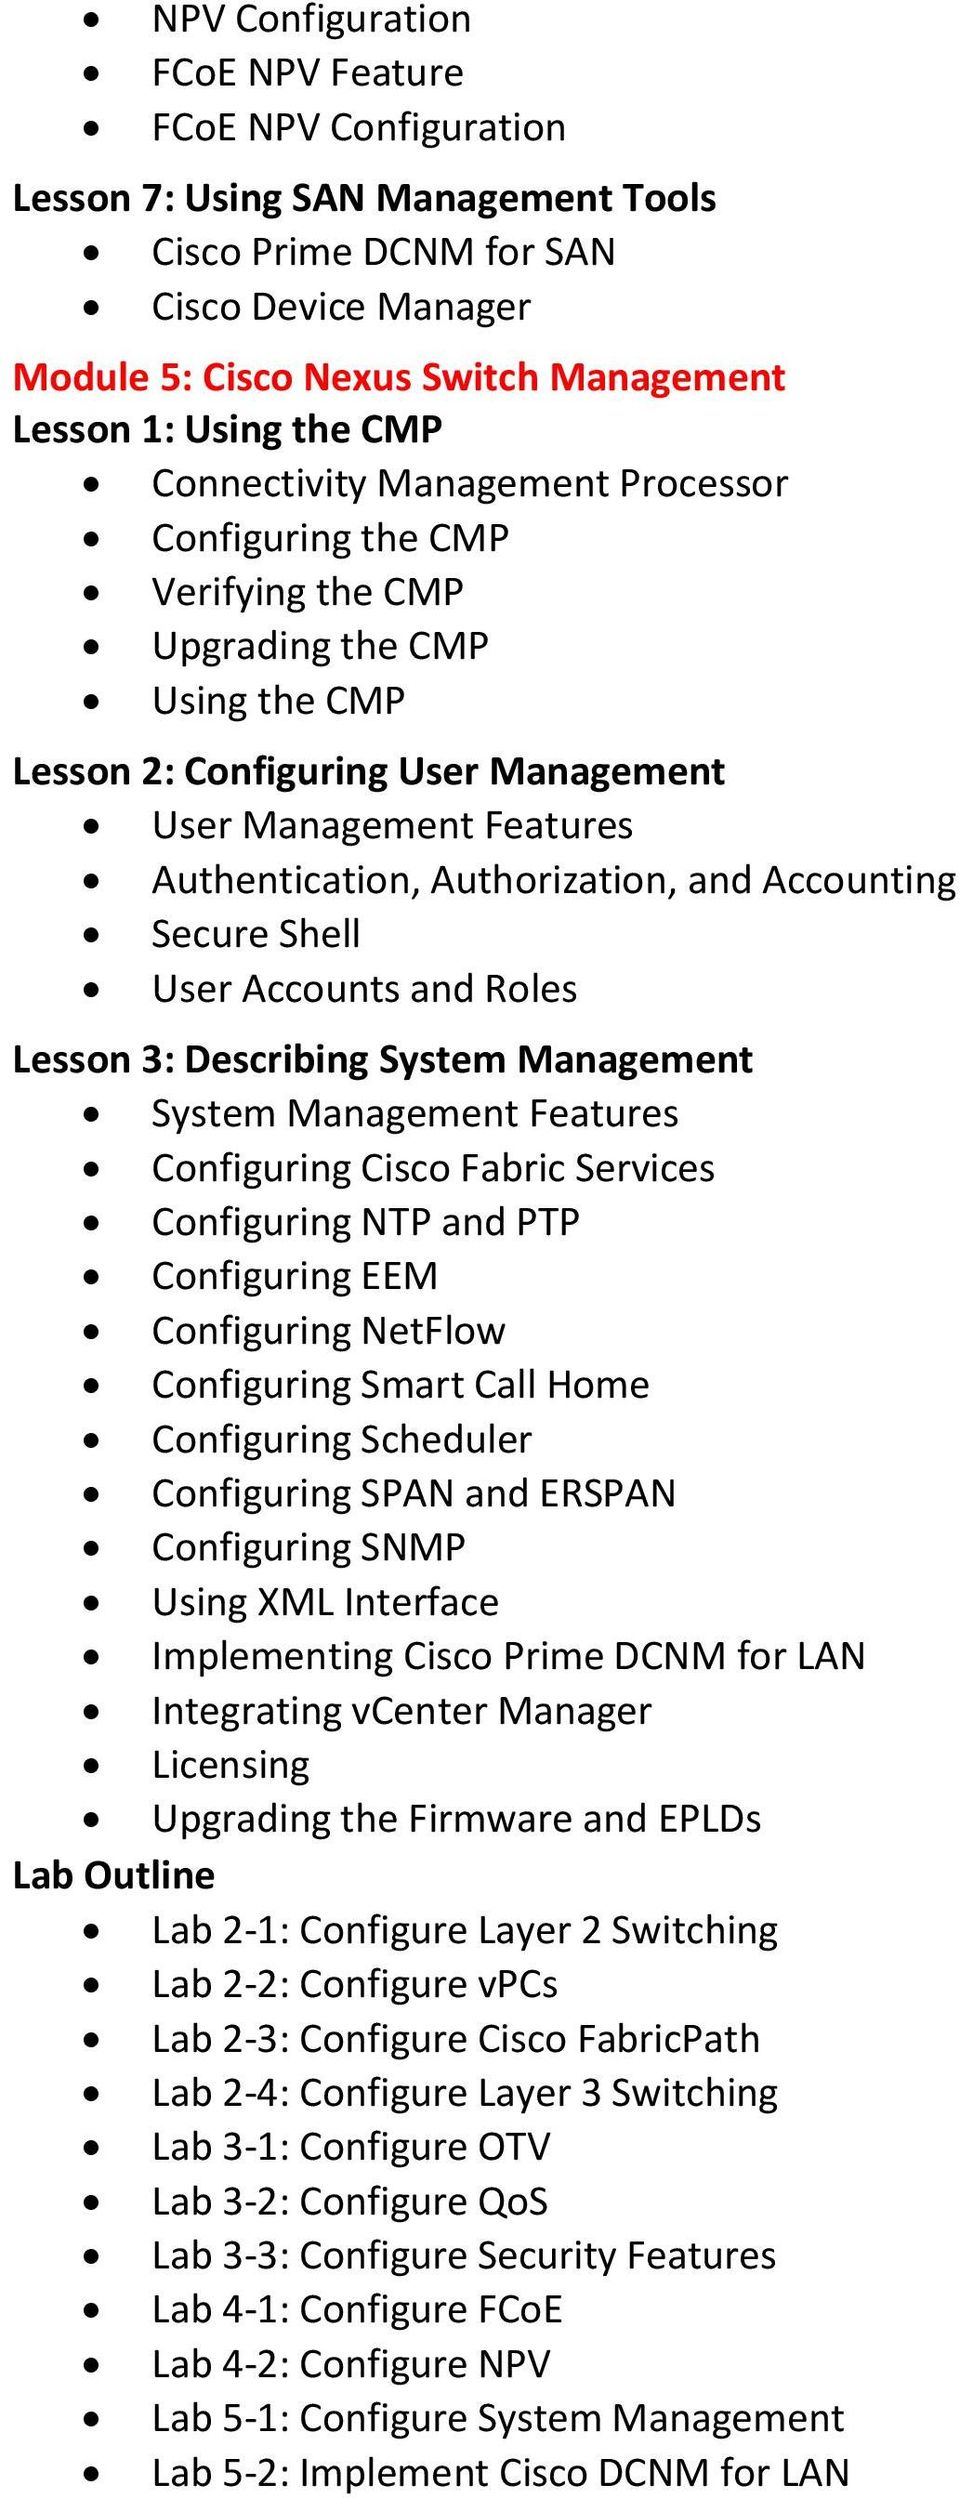 Authorization, and Accounting Secure Shell User Accounts and Roles Lesson 3: Describing System Management System Management Features Configuring Cisco Fabric Services Configuring NTP and PTP